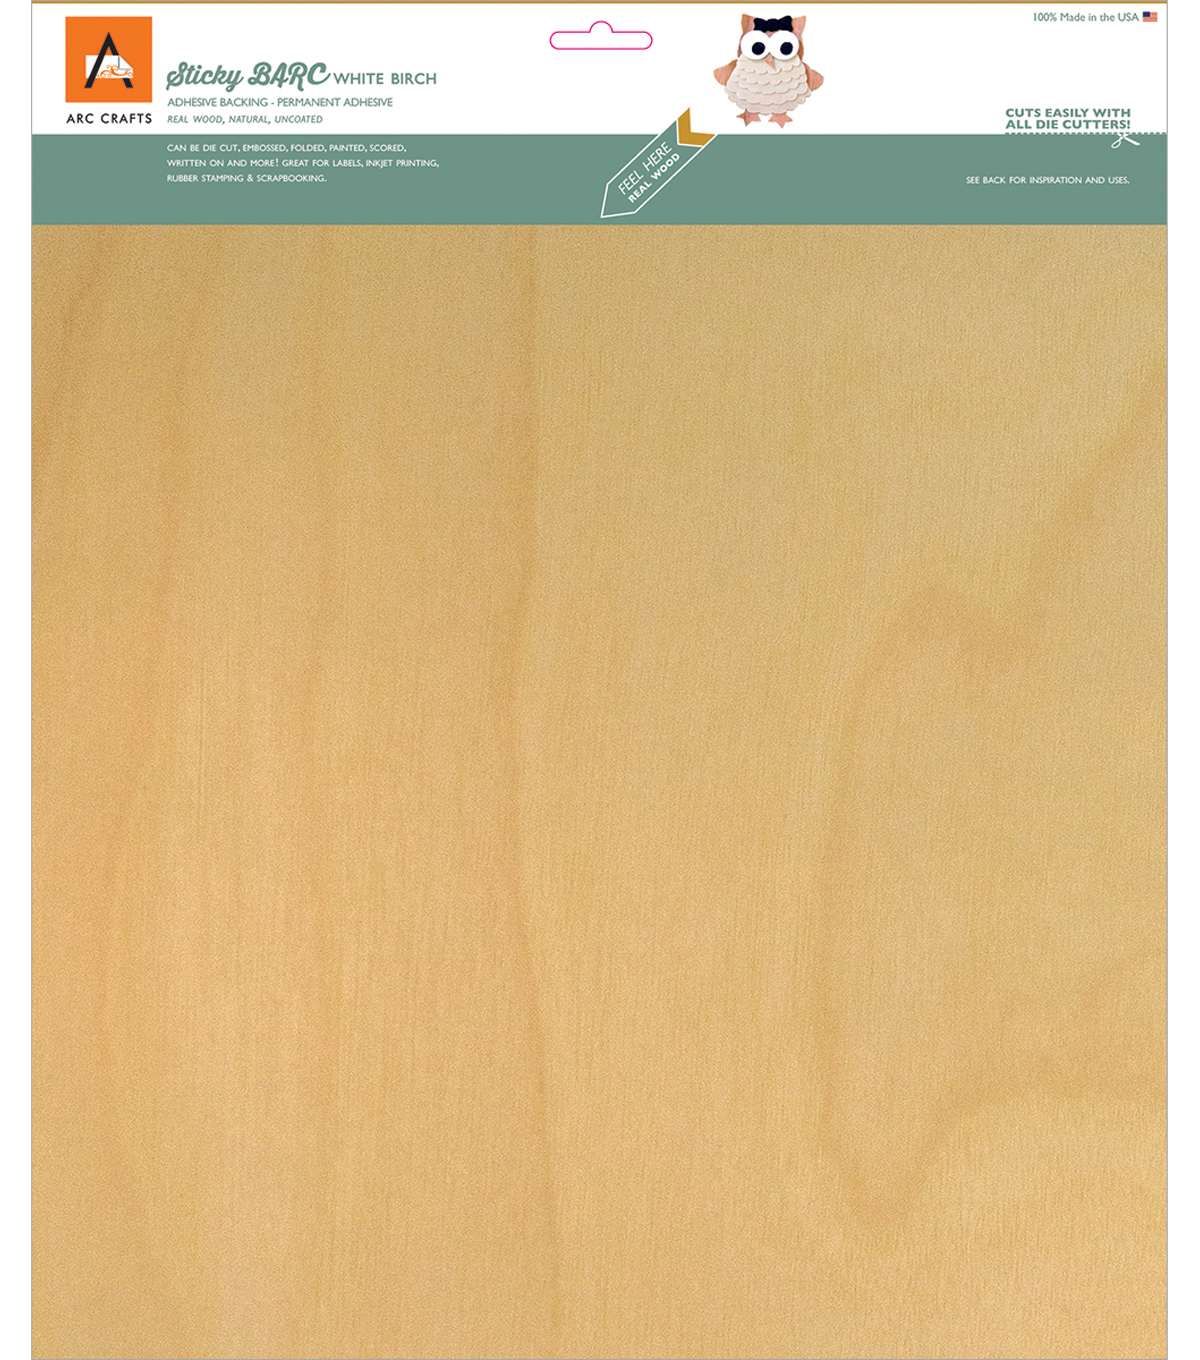 Arc Crafts BARC Wood Sheet With Adhesive Backing 12\u0027\u0027x12\u0027\u0027